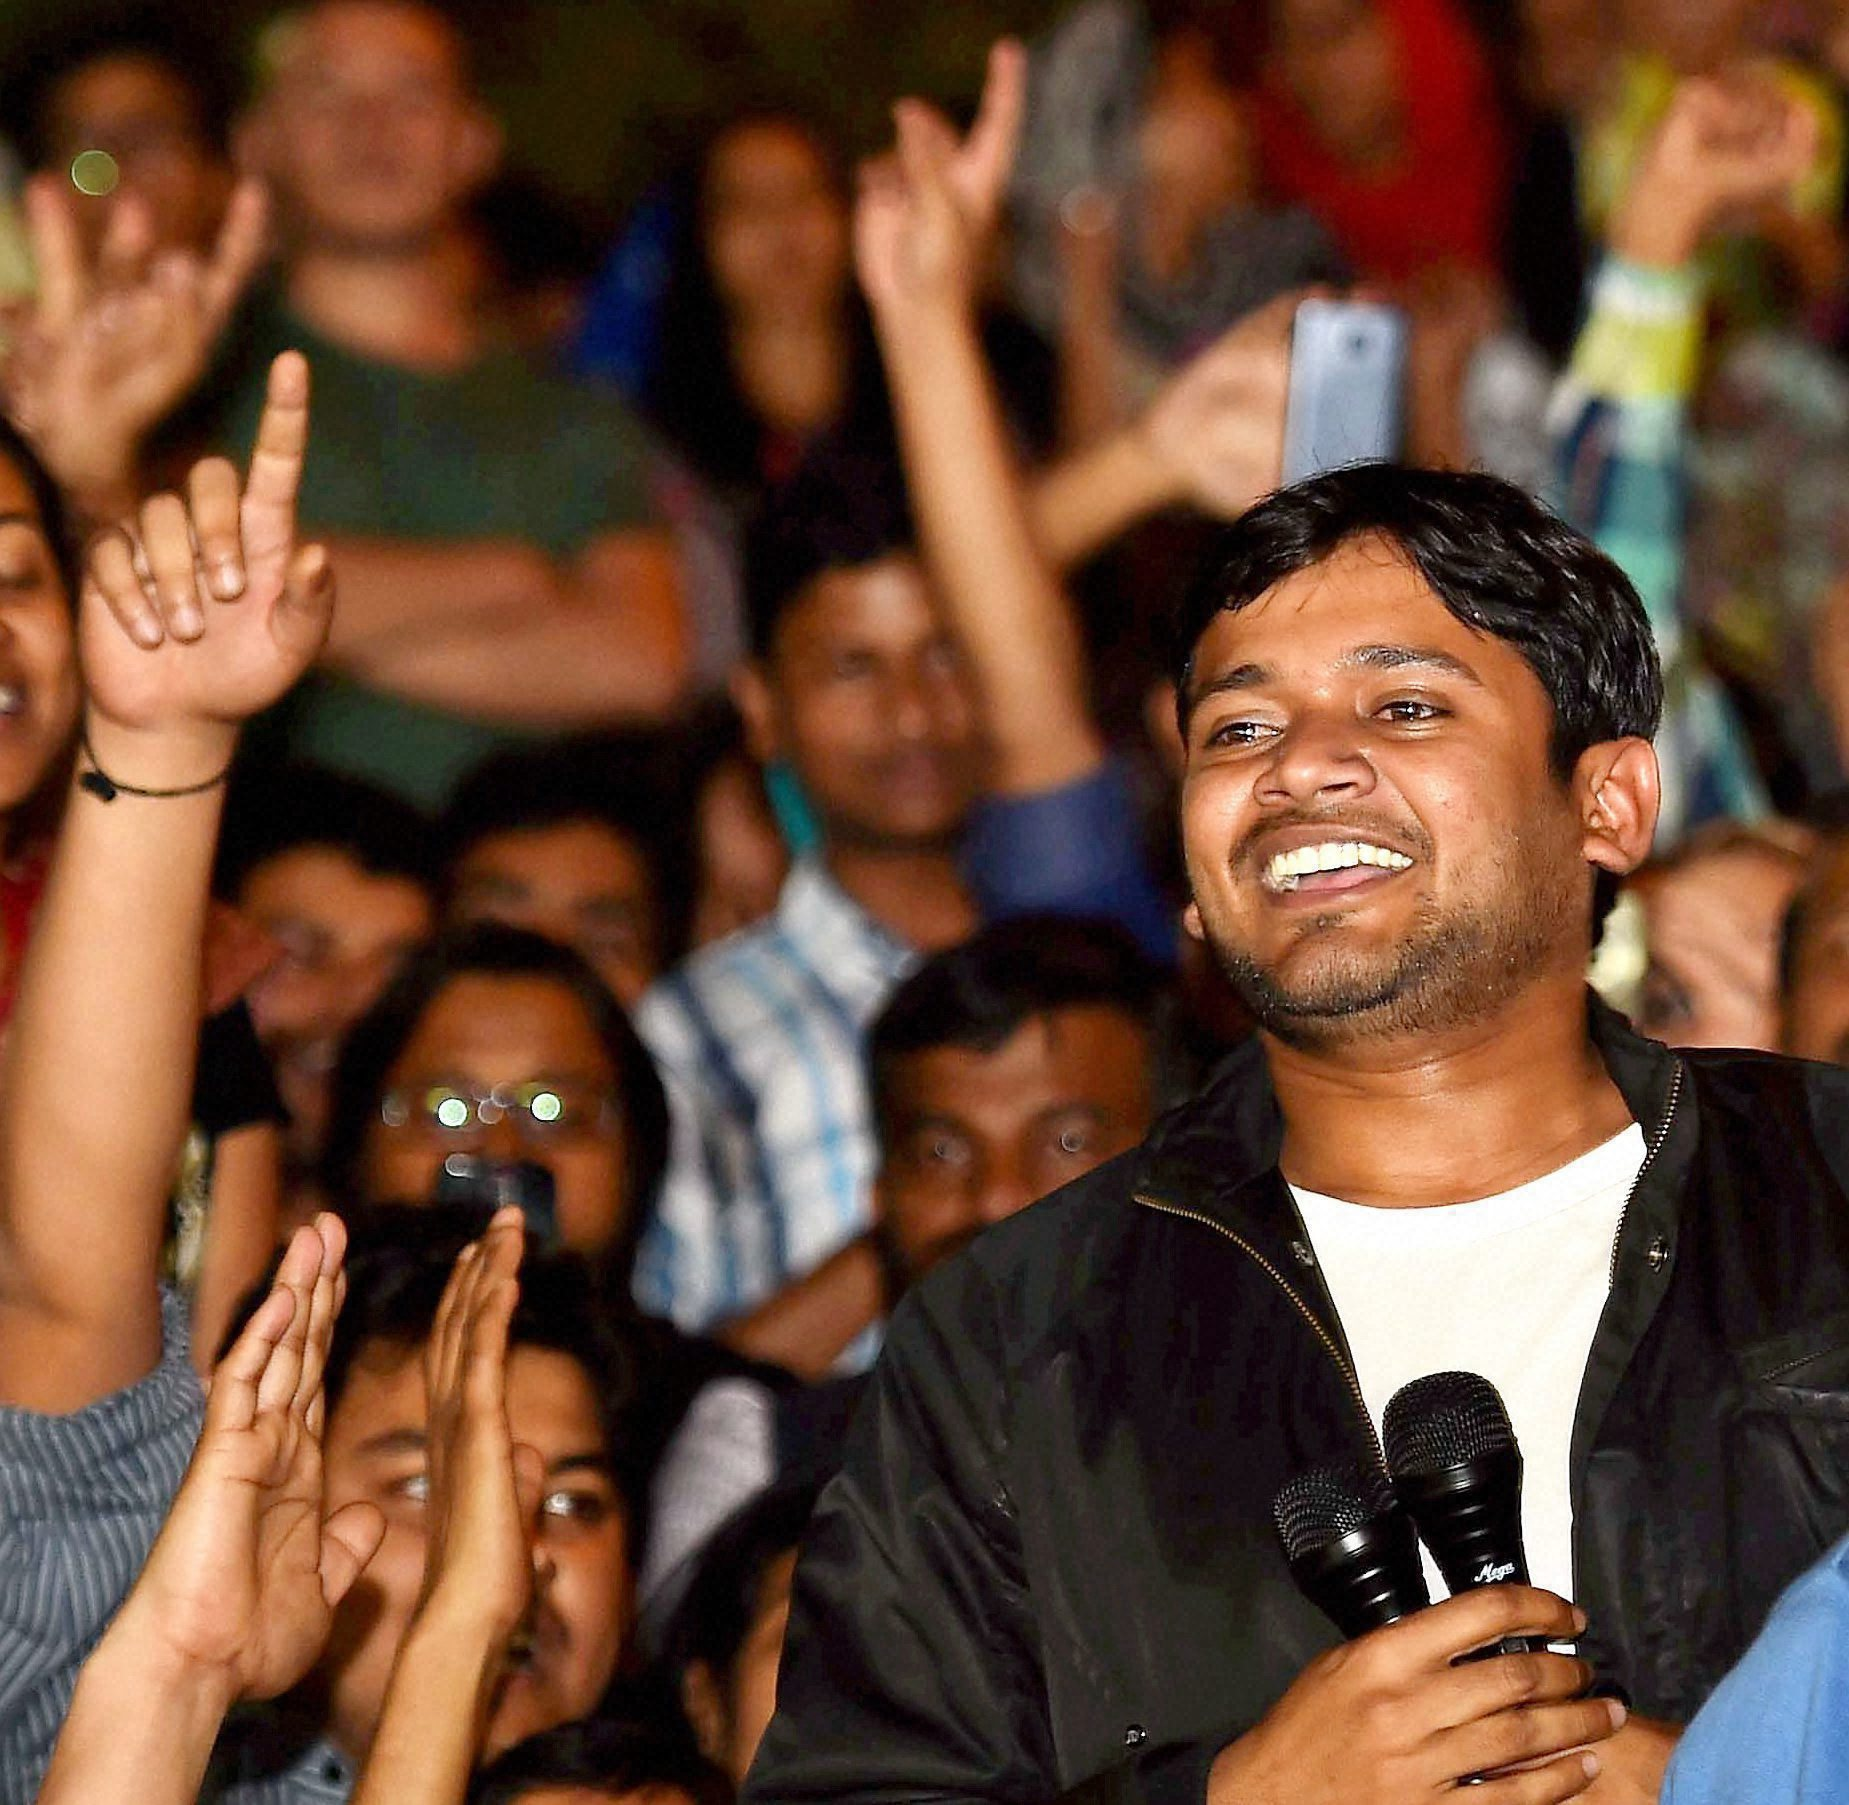 JNU Sedition Case: 3 Years Later, Chargesheet to Be Filed Against Kanhaiya Kumar, Others